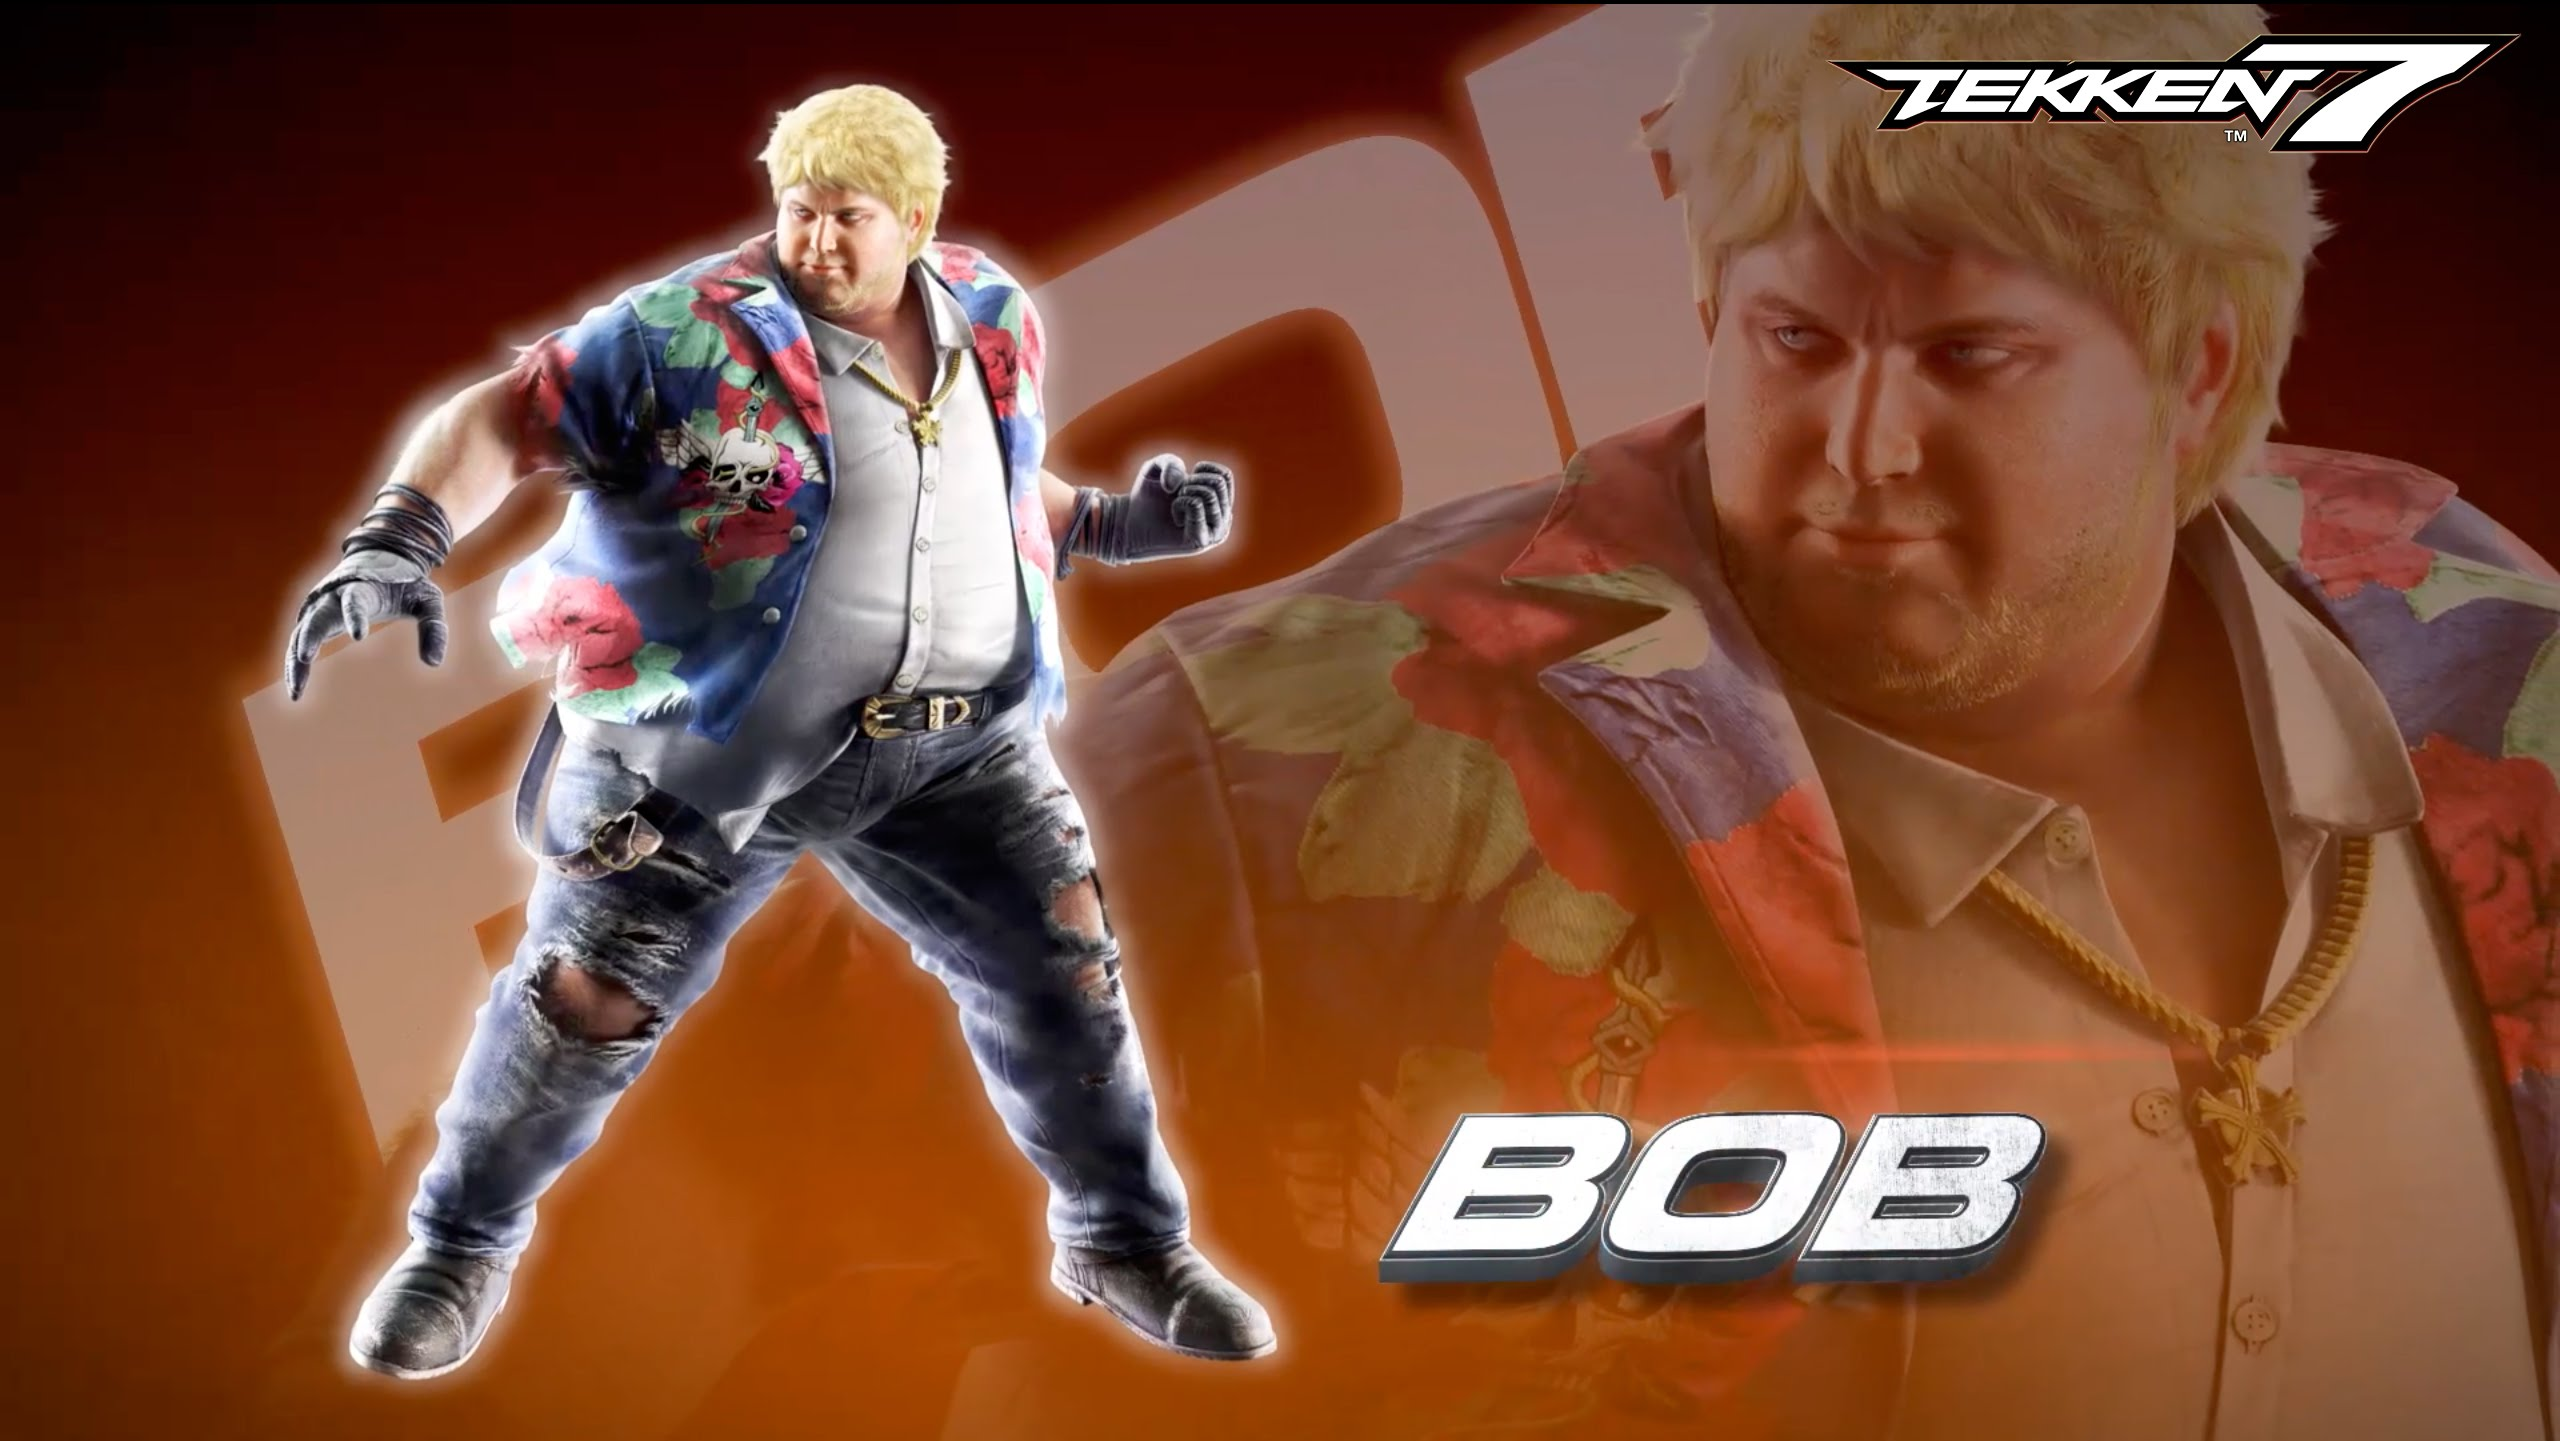 Tekken 7 – Bob Reveal Trailer